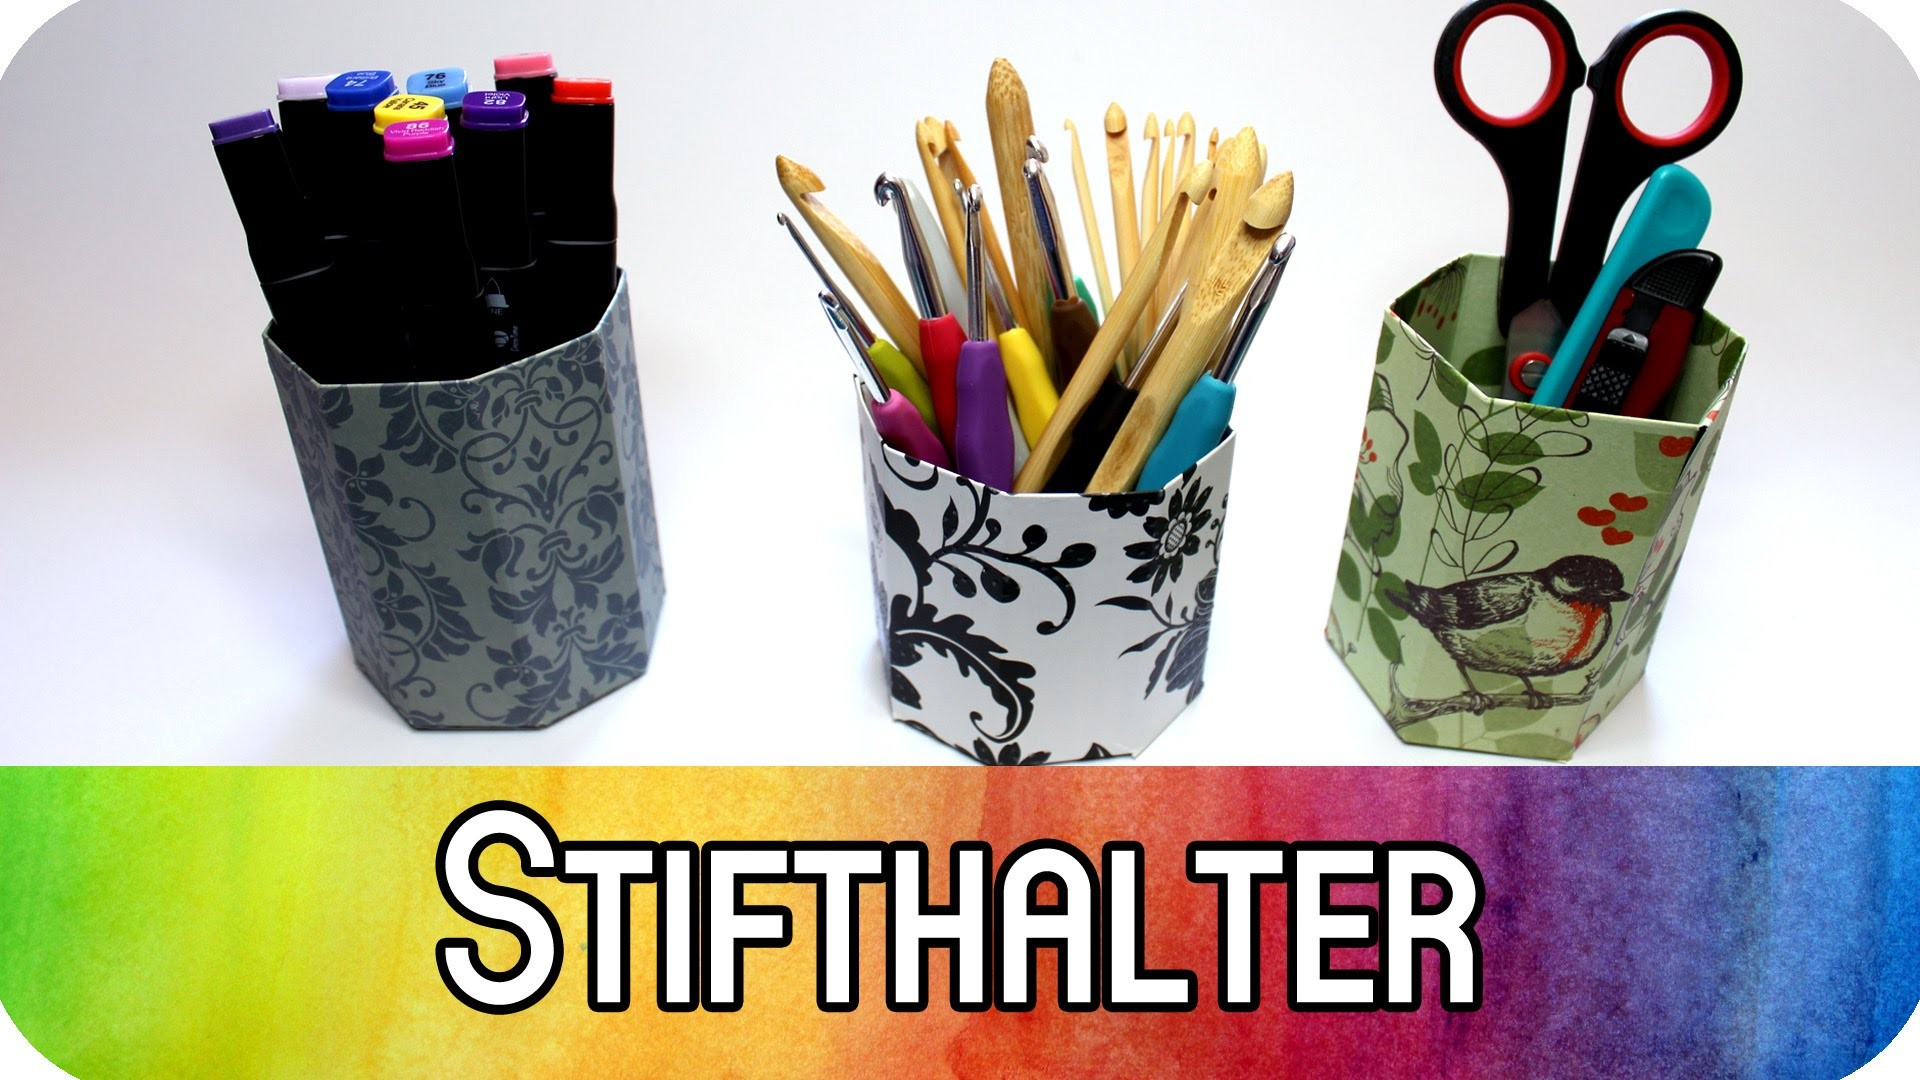 diy aufbewahrung 5min projekt stifthalter papierbecher. Black Bedroom Furniture Sets. Home Design Ideas